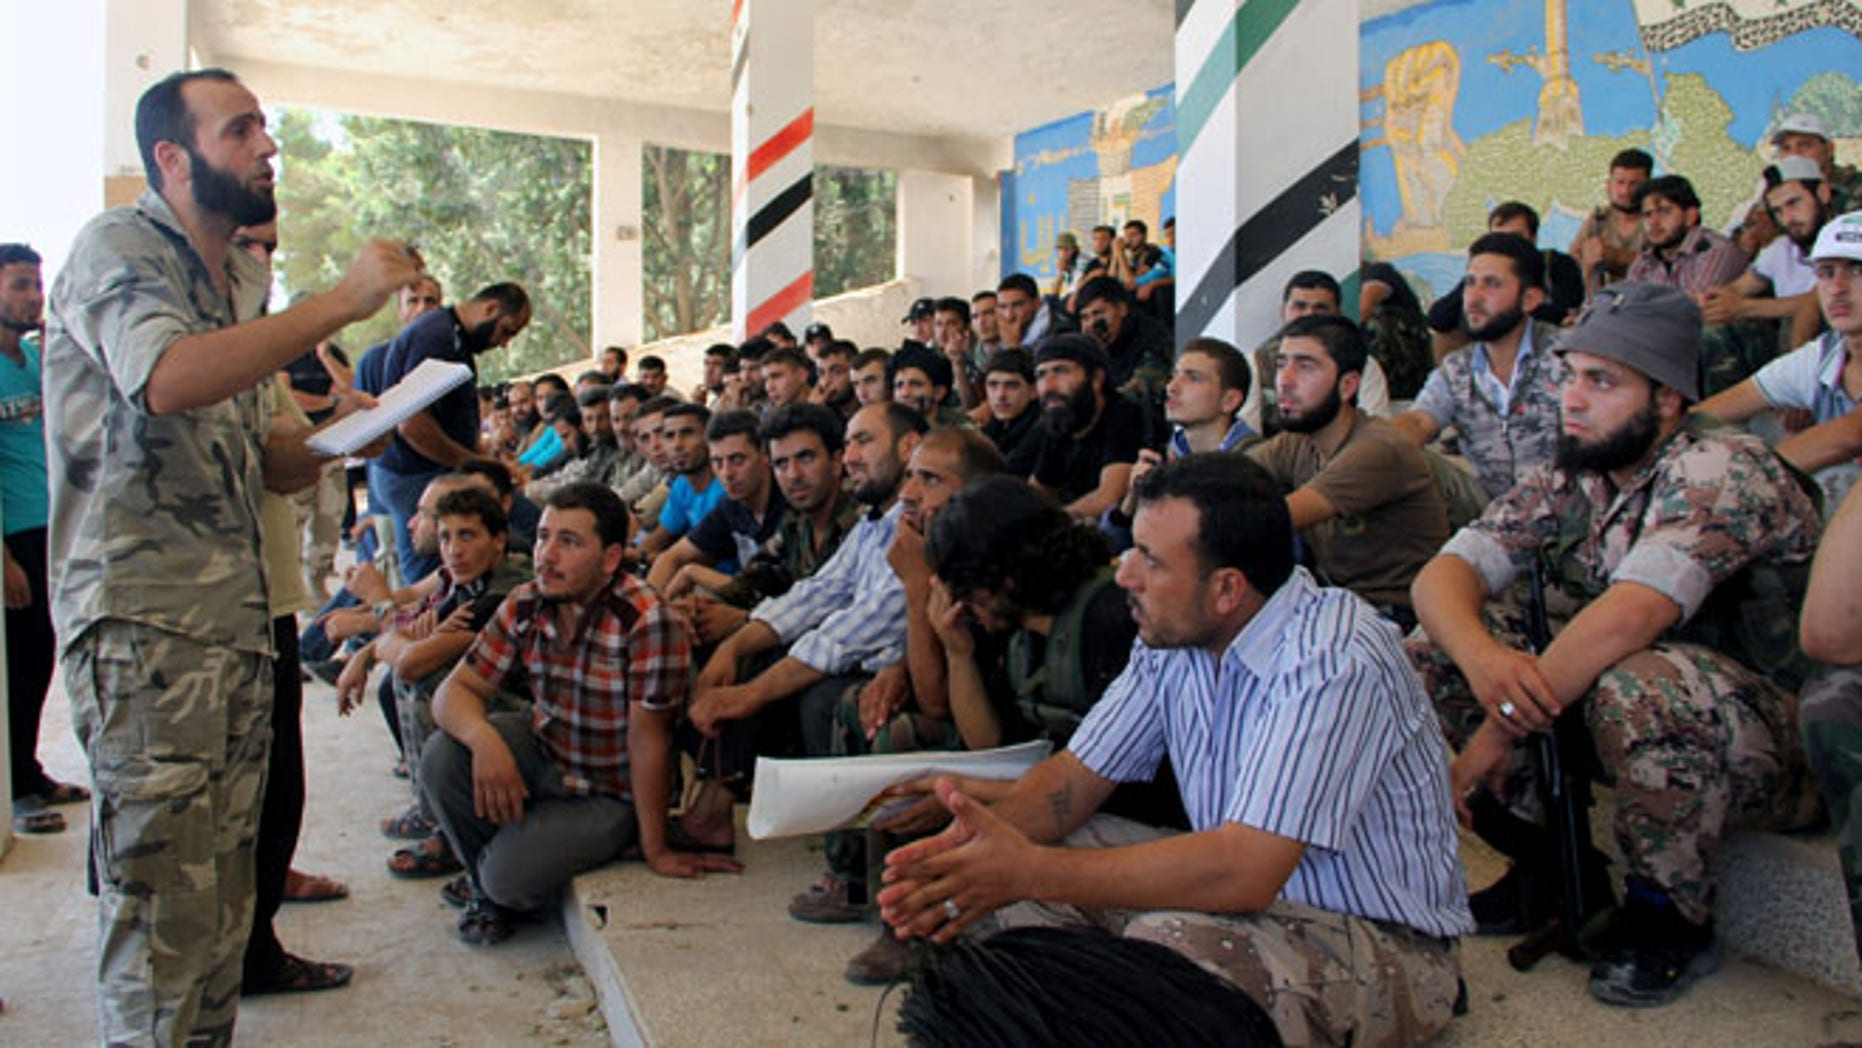 Aug. 13, 2013: In this citizen journalism image provided by Tawhid Brigade, which has been authenticated based on its contents and other AP reporting, Abdul-Qadir Saleh, left, the chief commander of the Tawhid Brigade, the main rebel outfit in Aleppo province, speaks to his fighters ahead of an attack on government troops, in Aleppo, Syria.